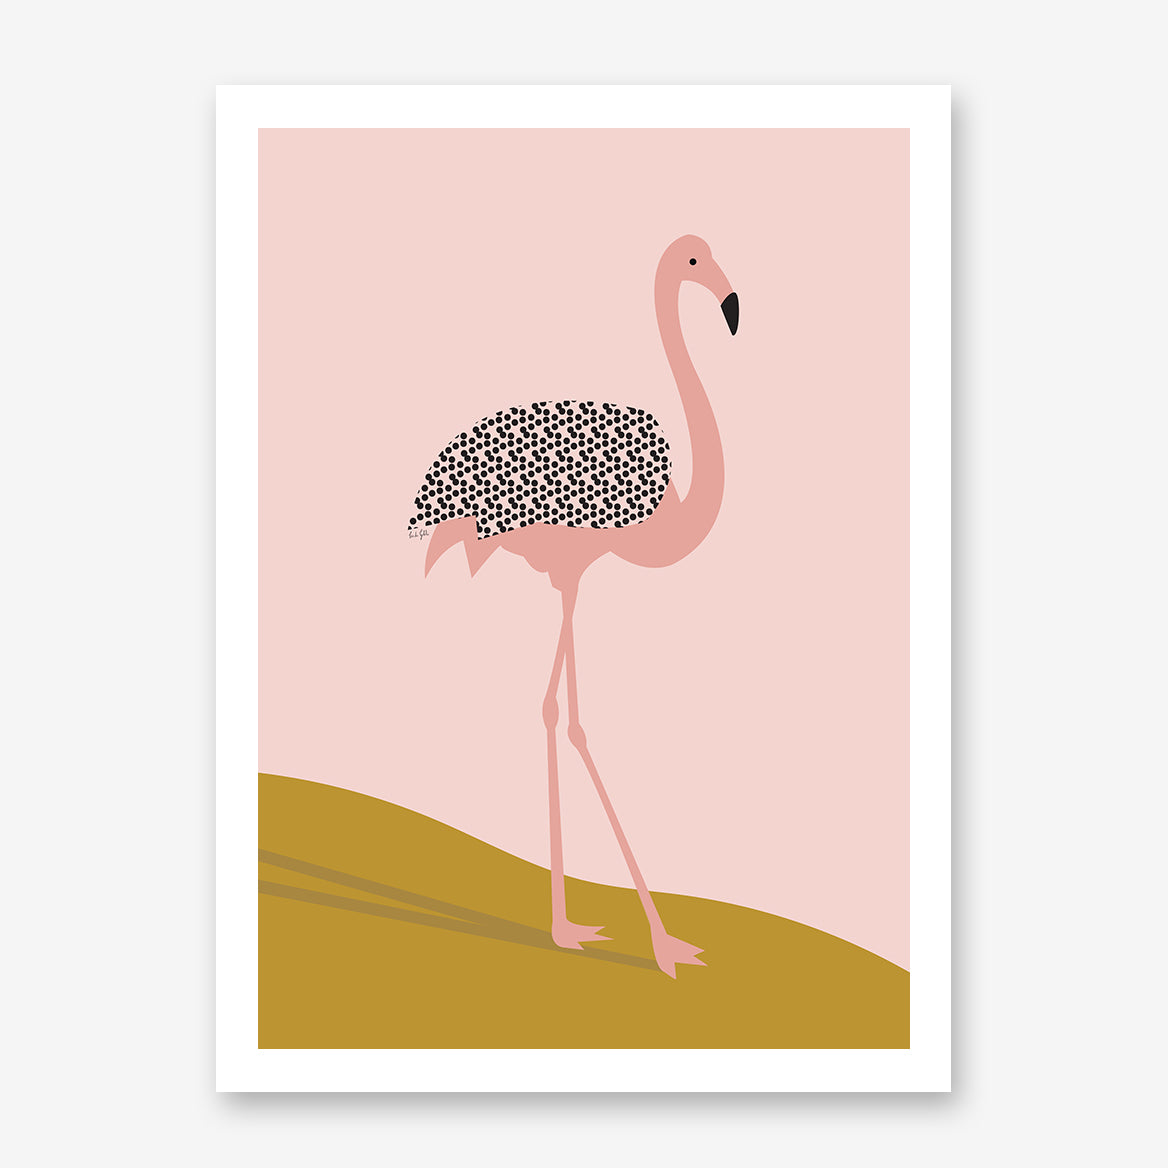 Illustration print by Linda Gobeta, with a pink and black flamingo.